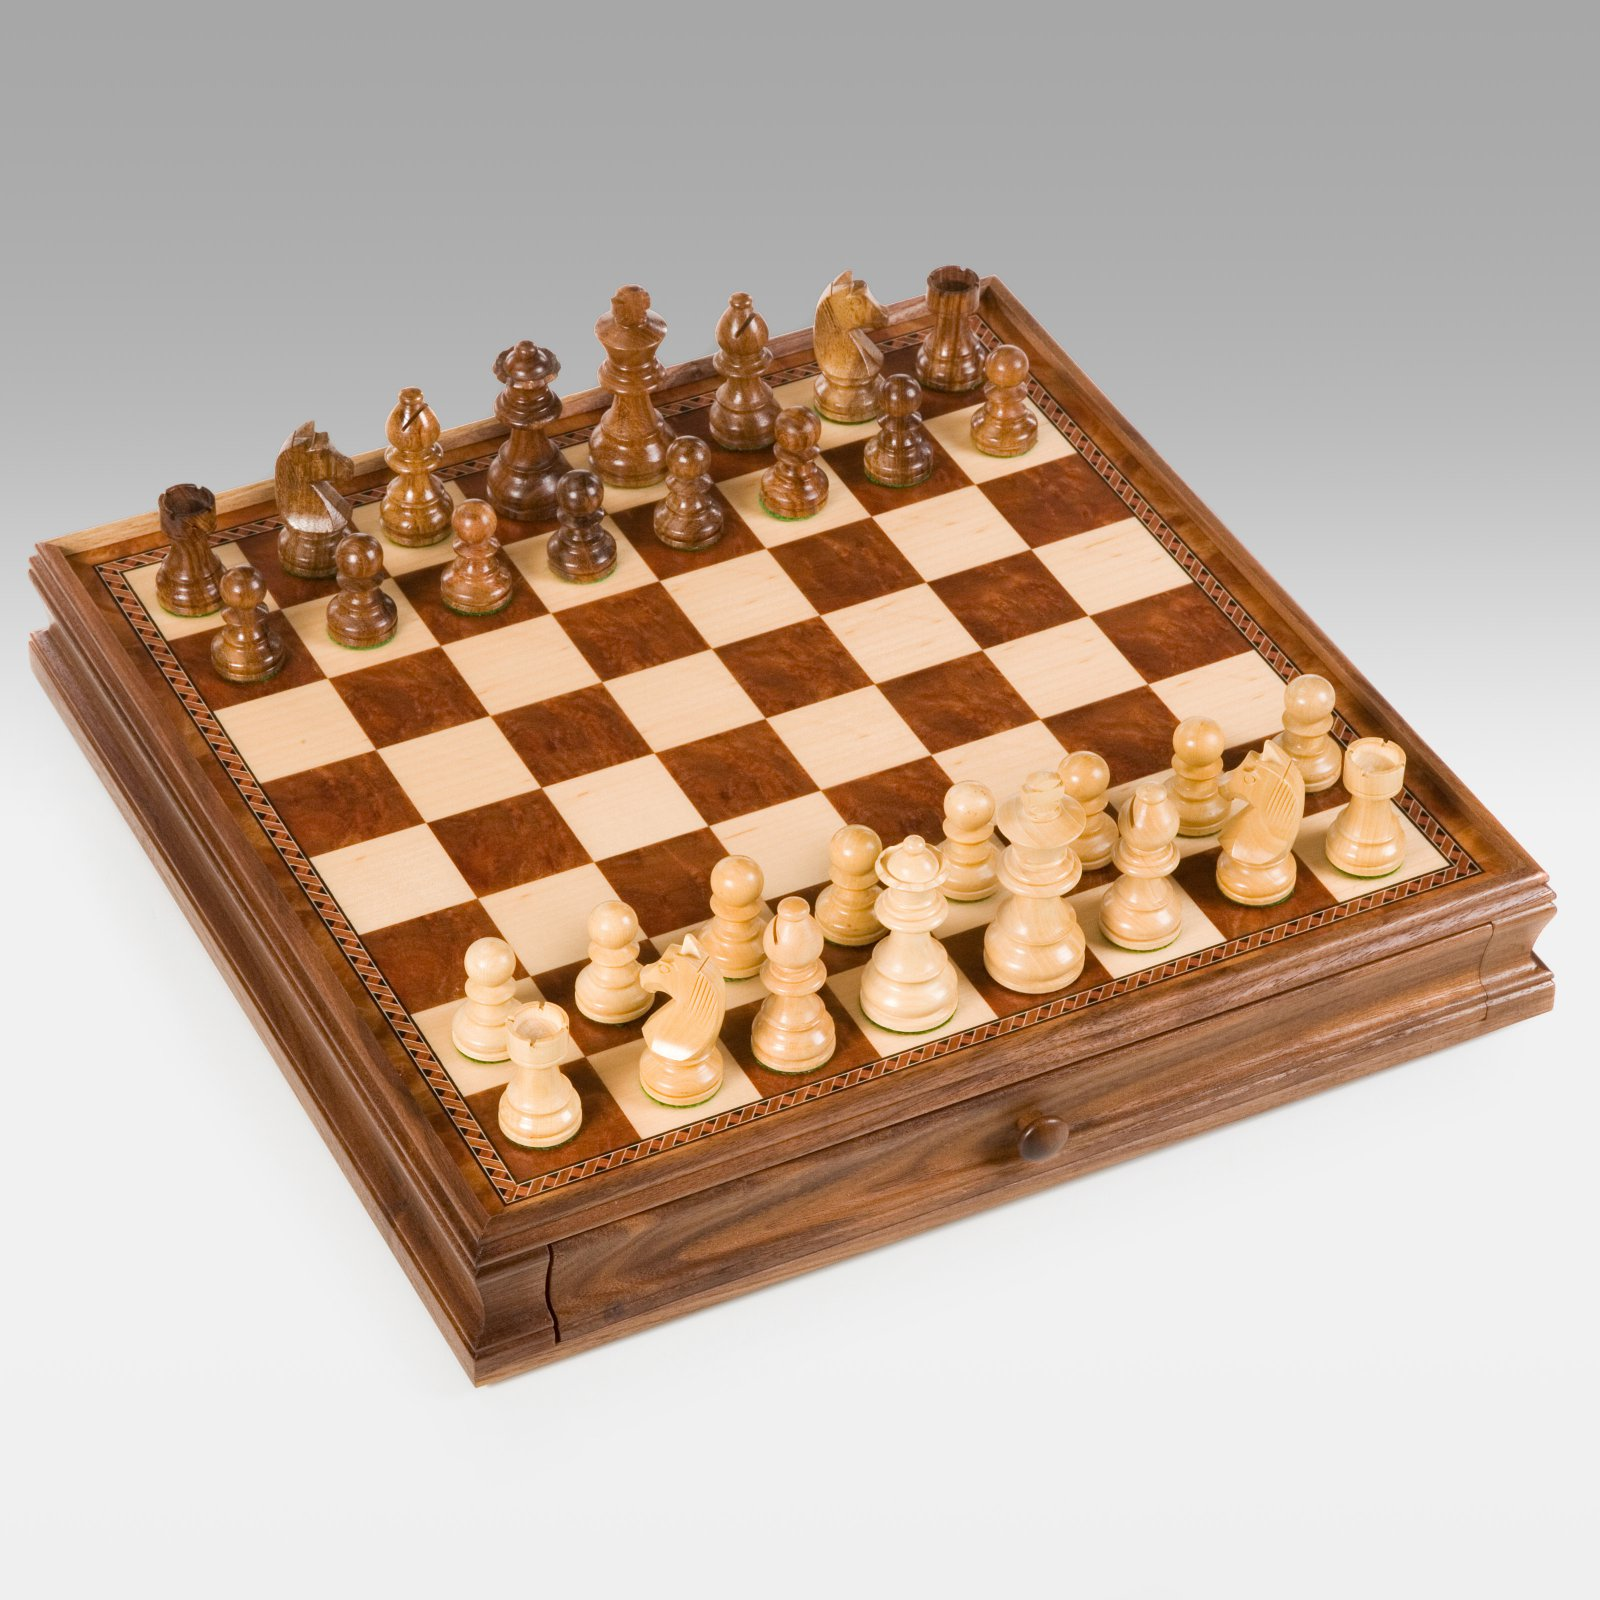 Walnut Staunton Chess & Checkers Set by Wood Expressions